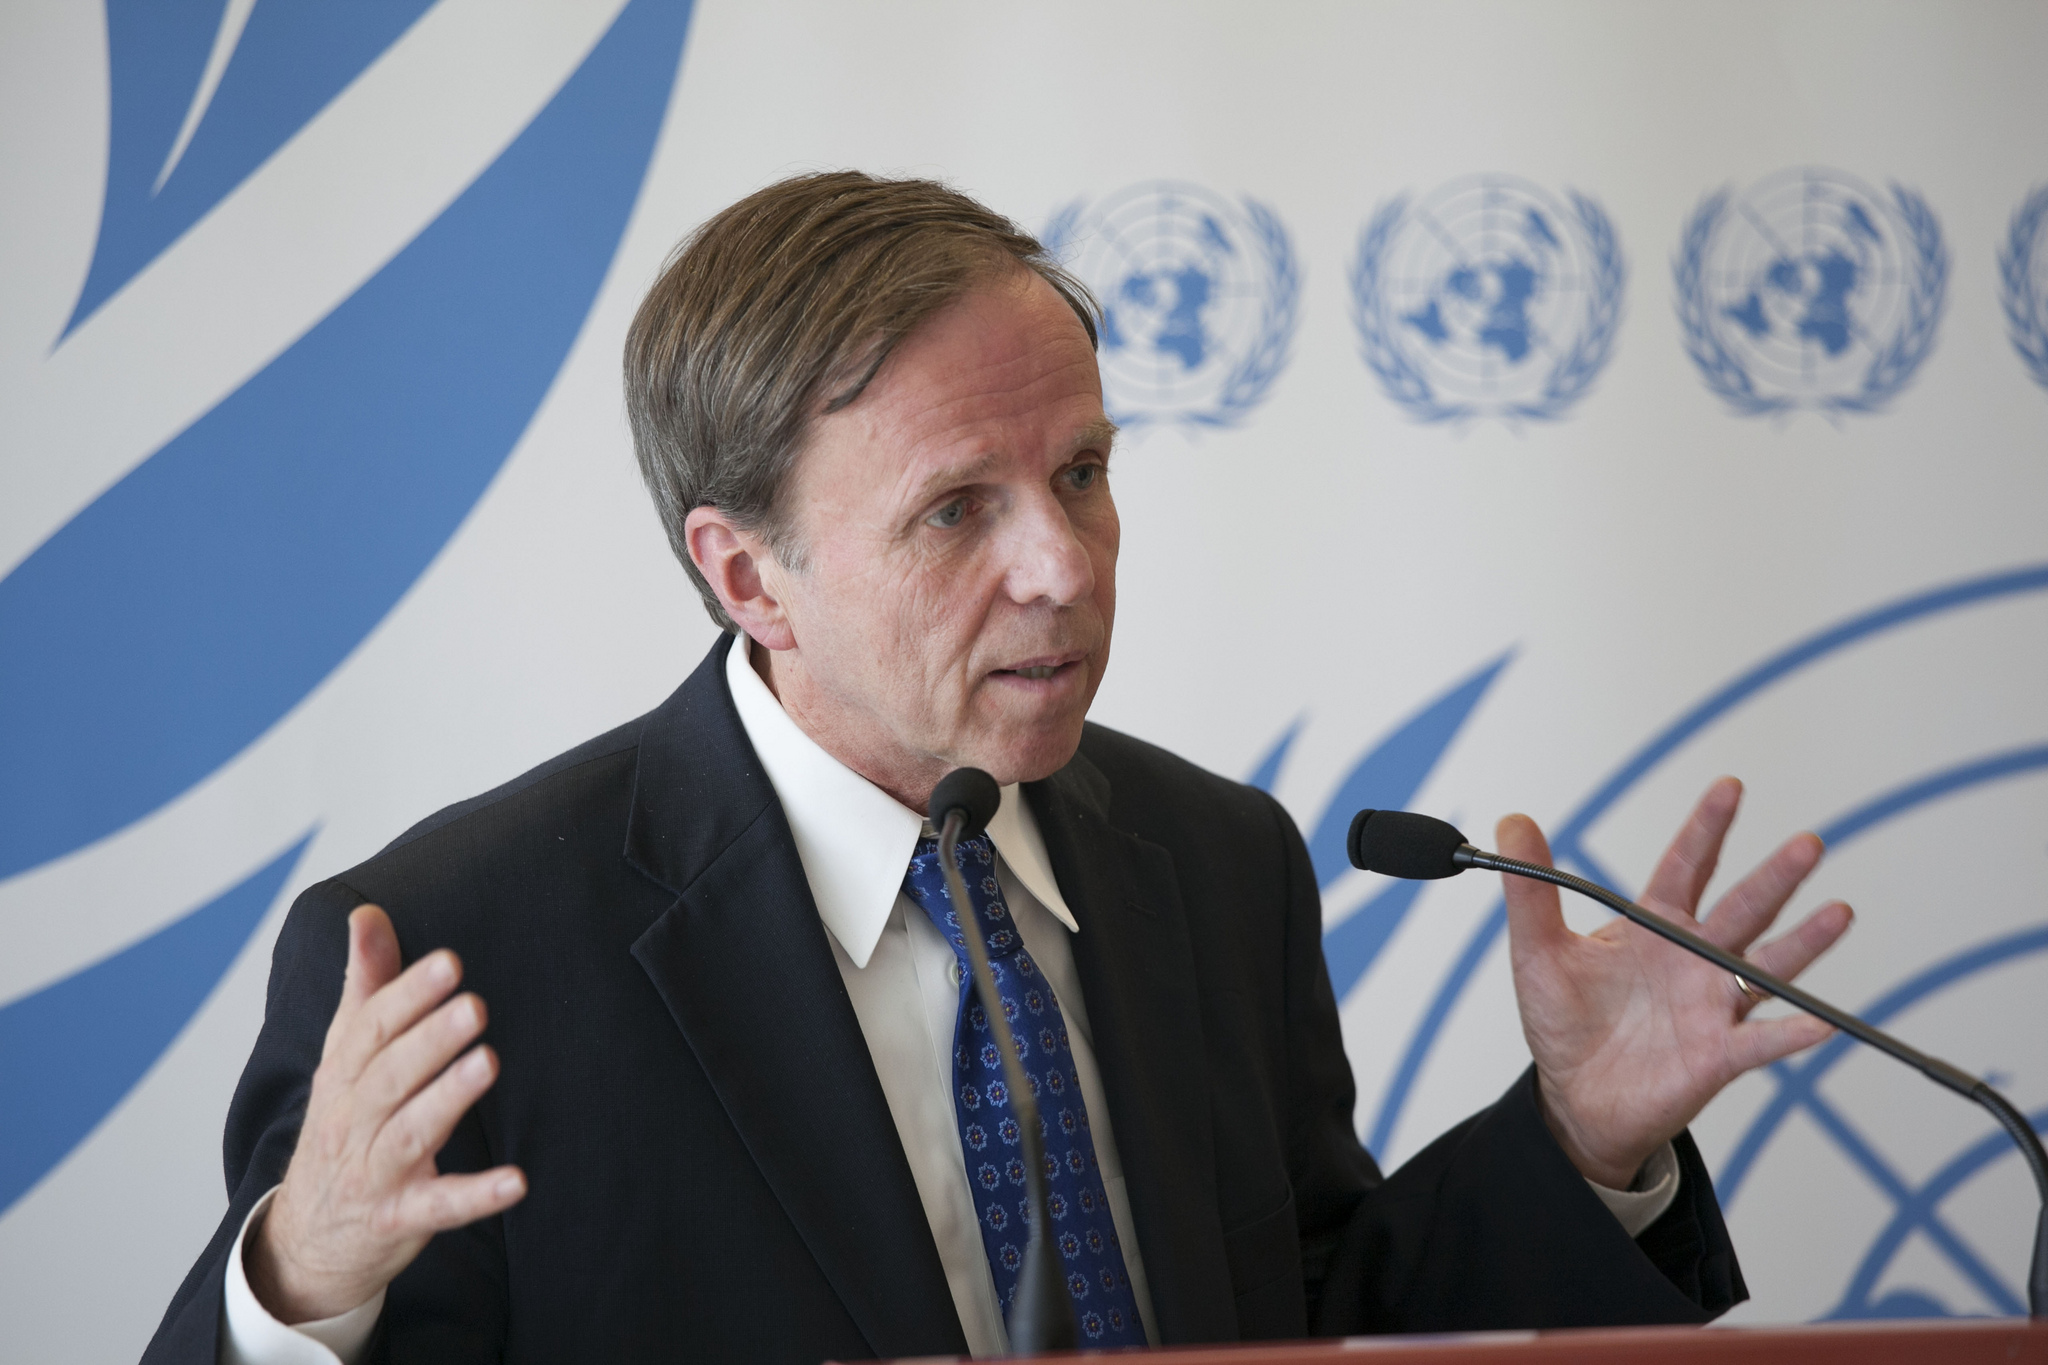 Michael Posner speaking at the UN Human Rights Council in 2012.